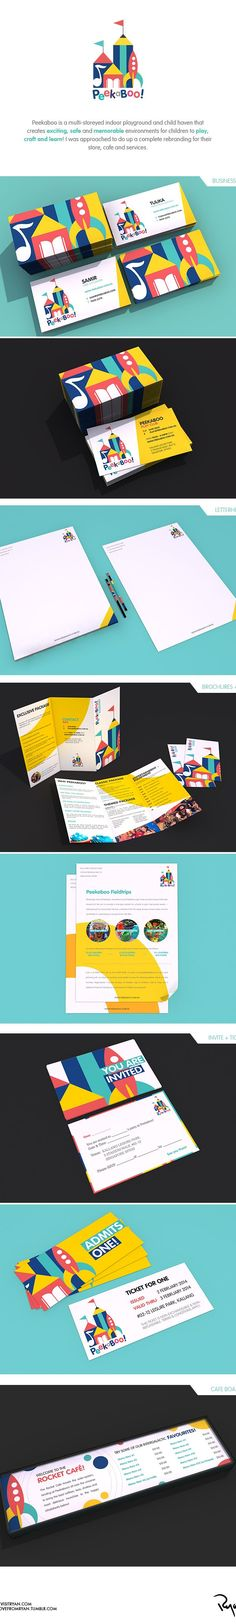 A branding / identity project done for the playground and child-haven, Peekaboo! Design Poster, Book Design, Web Design, Brand Identity Design, Graphic Design Branding, Kids Graphic Design, Kids Branding, Logo Branding, Kindergarten Logo